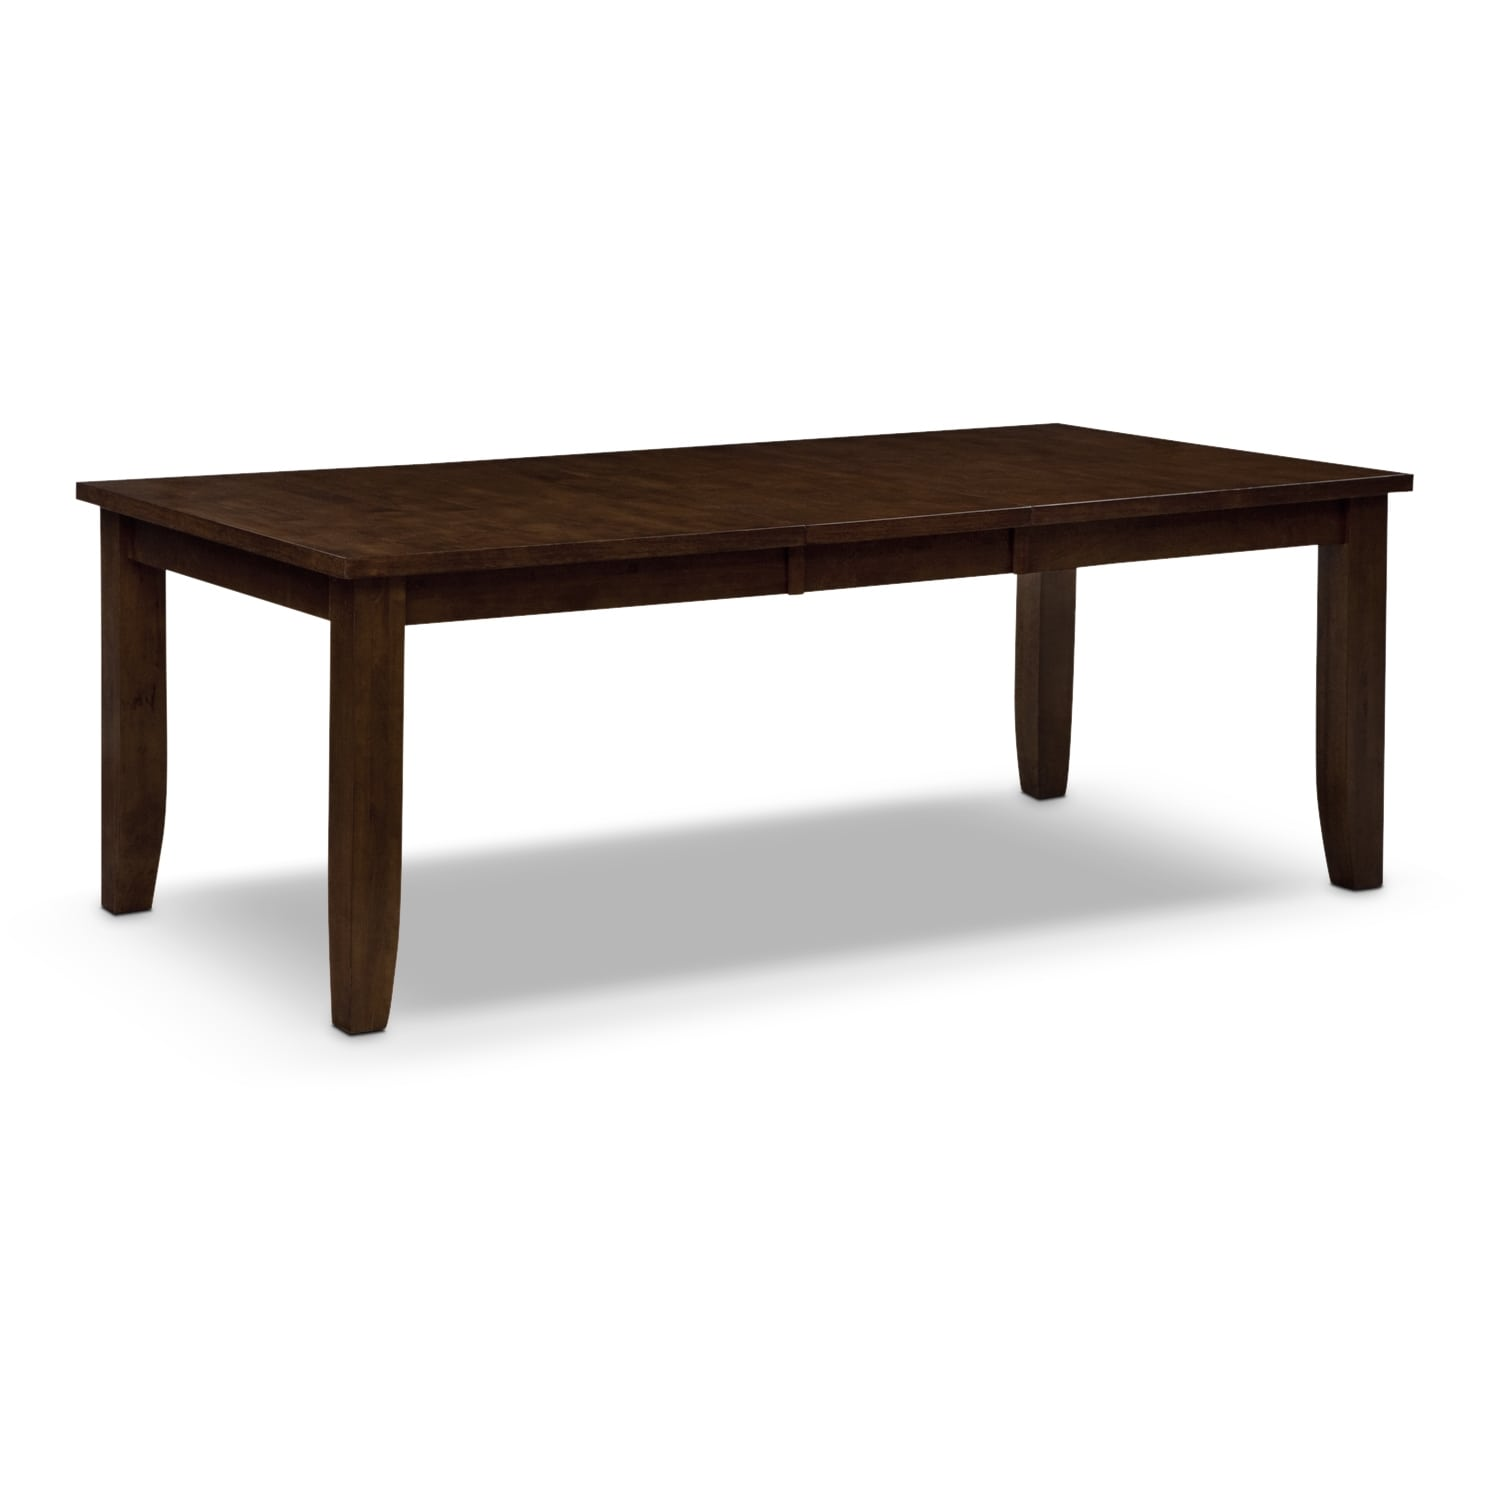 Abaco Dining Table - Brown